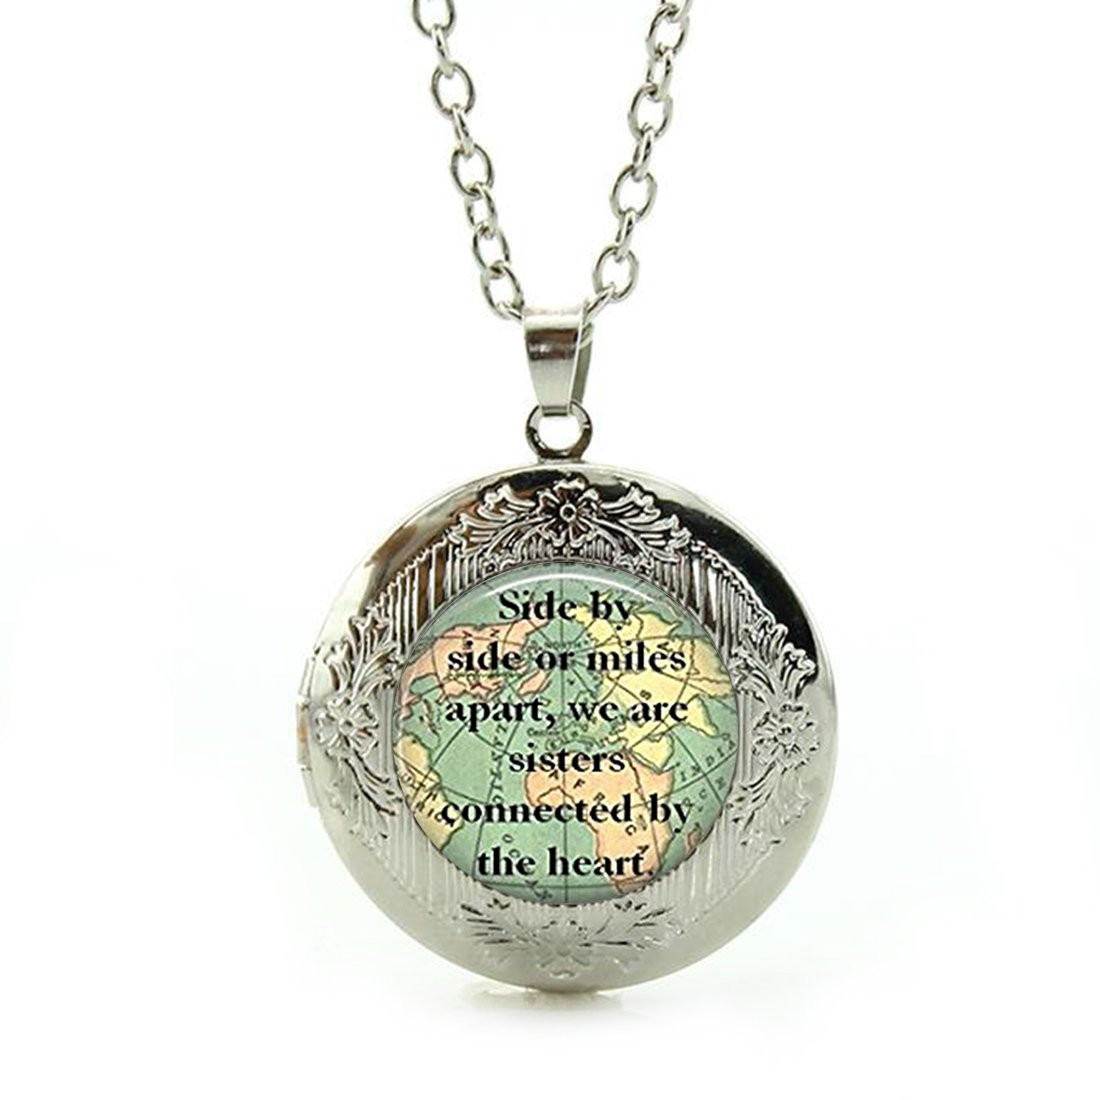 SunShine Day Silver Necklace, Sister Map Travel World Map Design Girls/Boys Chain Necklace with Pendant